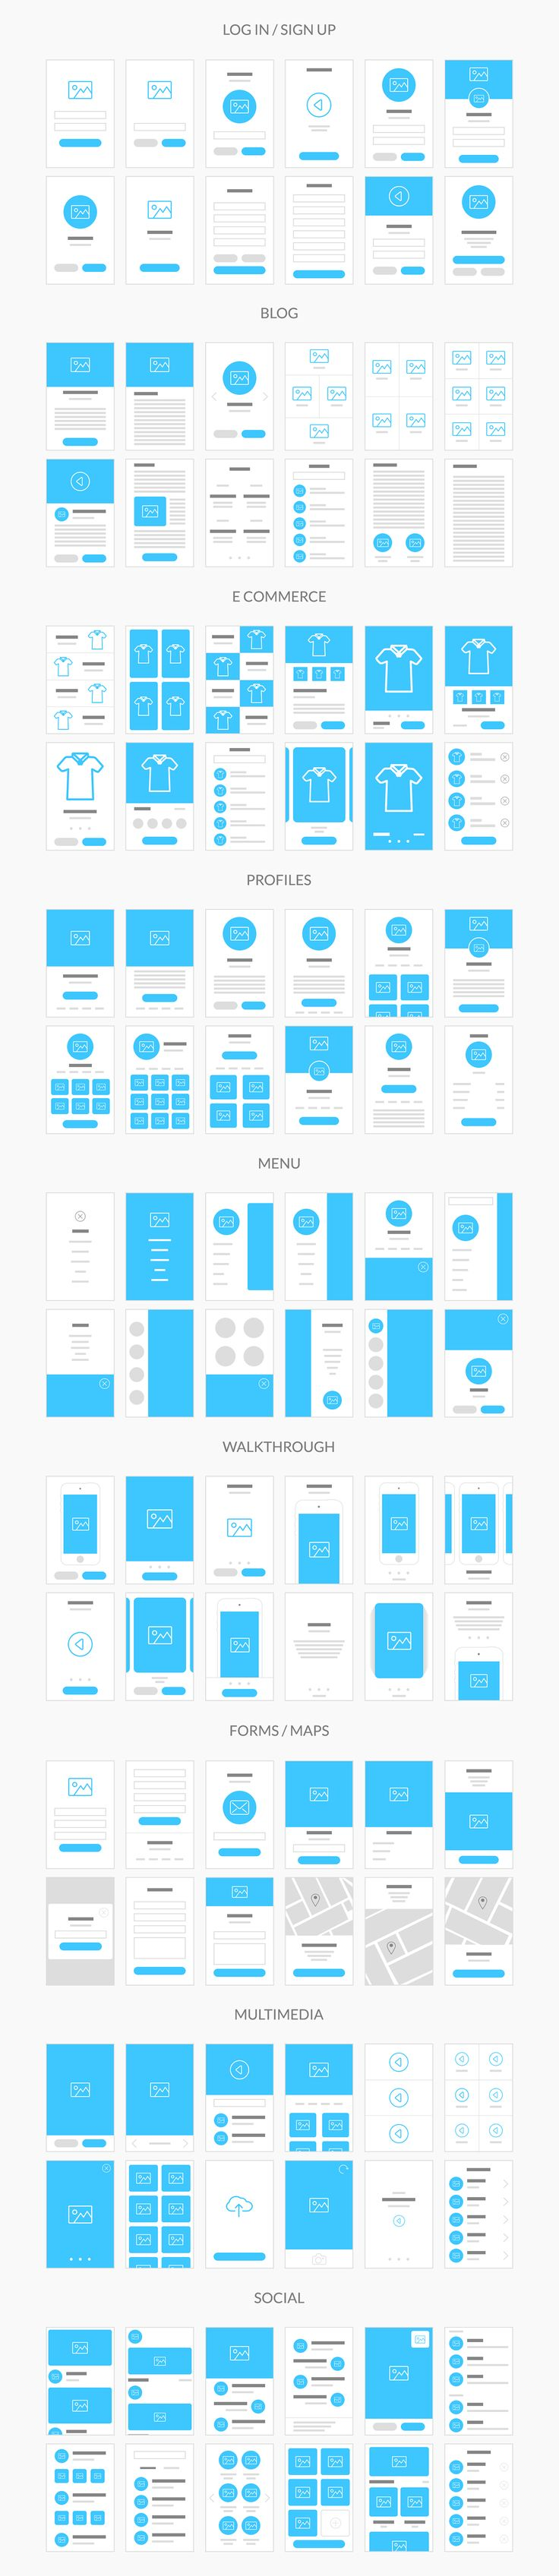 Flowy is made with fast workflow in mind, so we created 236 ready to use templates, built on the 1170 grid and in Photoshop & Sketch file formats. You can create flowcharts for both mobile and web projects of any complexity and show them to your team or c…